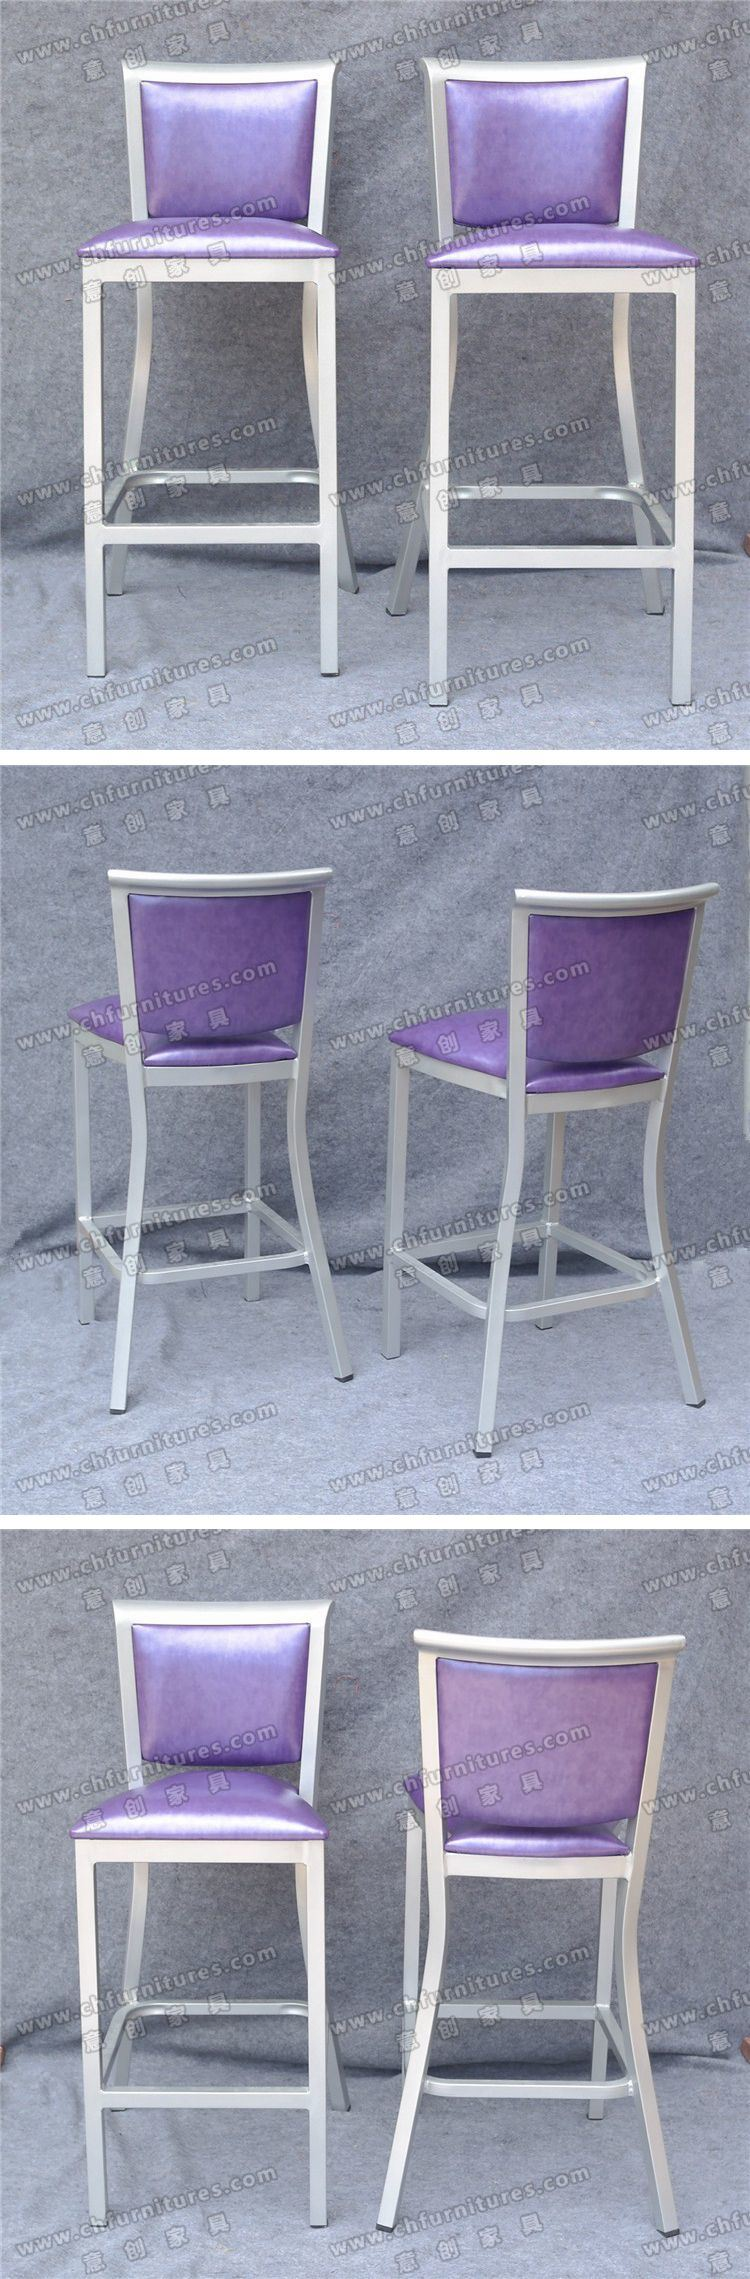 Purple Leather Bar Chair for House Decoration Yc-H003-11